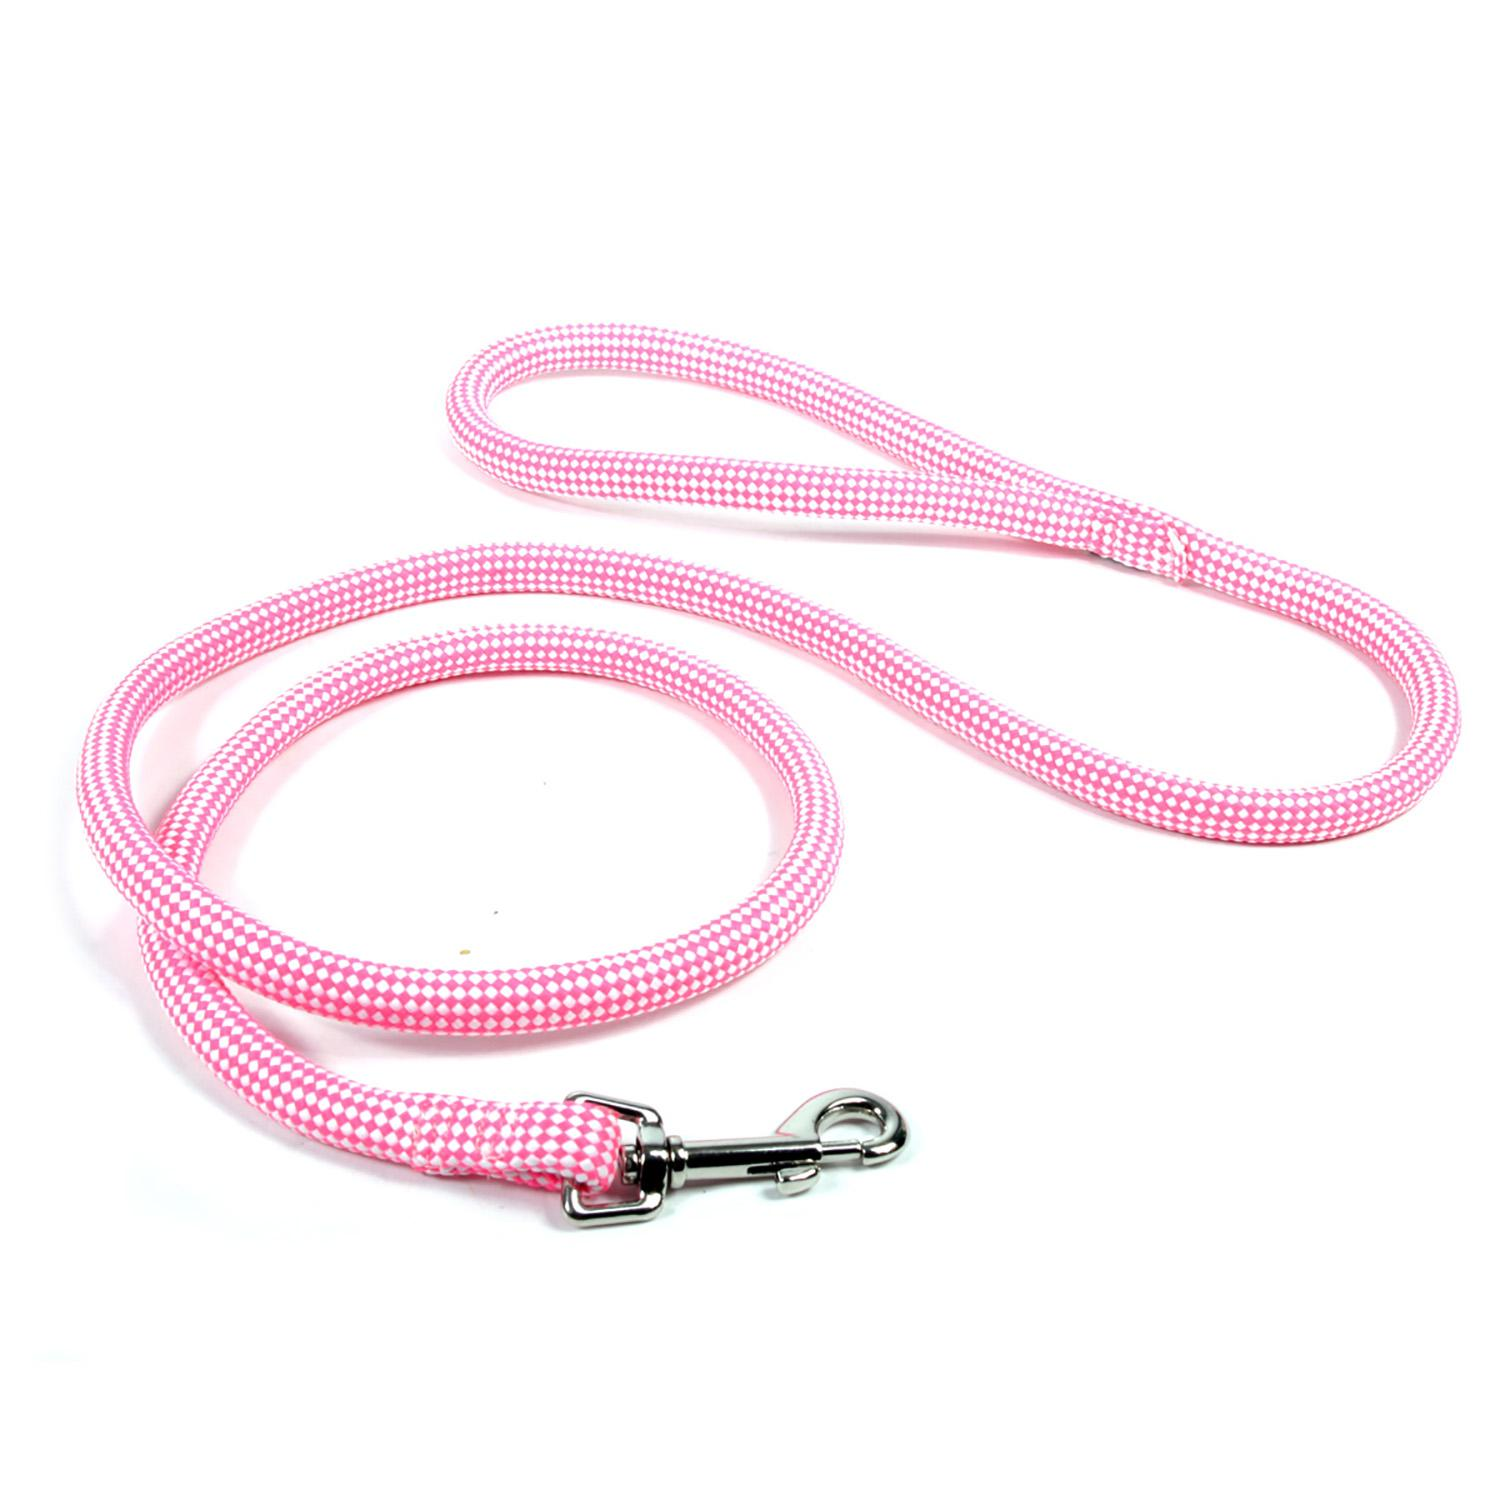 Checkerboard Braided Dog Leash by Yellow Dog - Pink